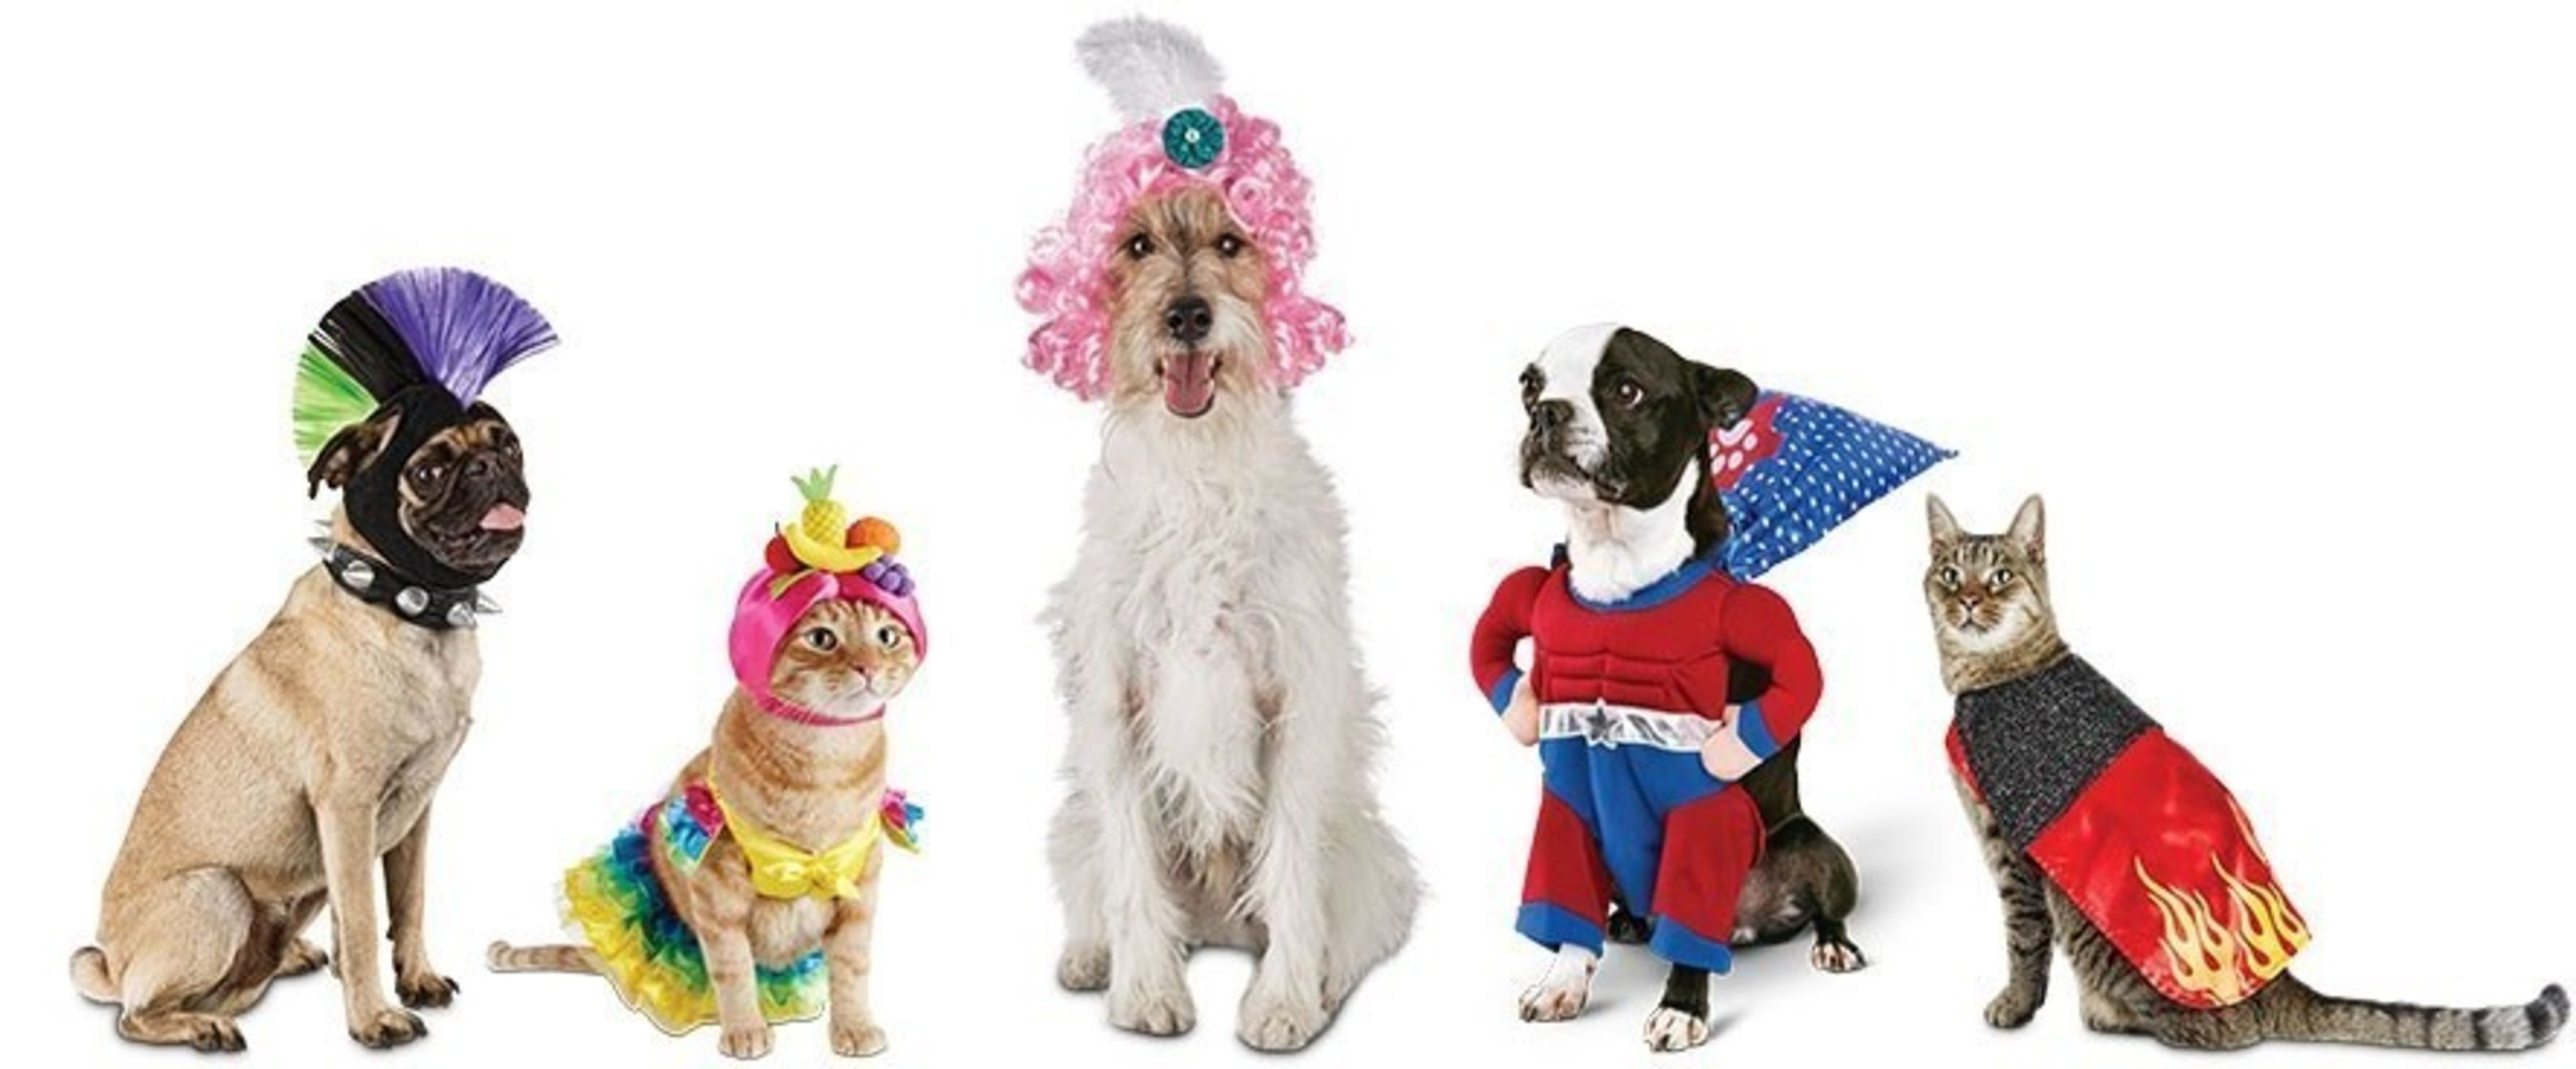 Petco has festive pet parents and their pets covered with a fun assortment of pet costumes and accessories